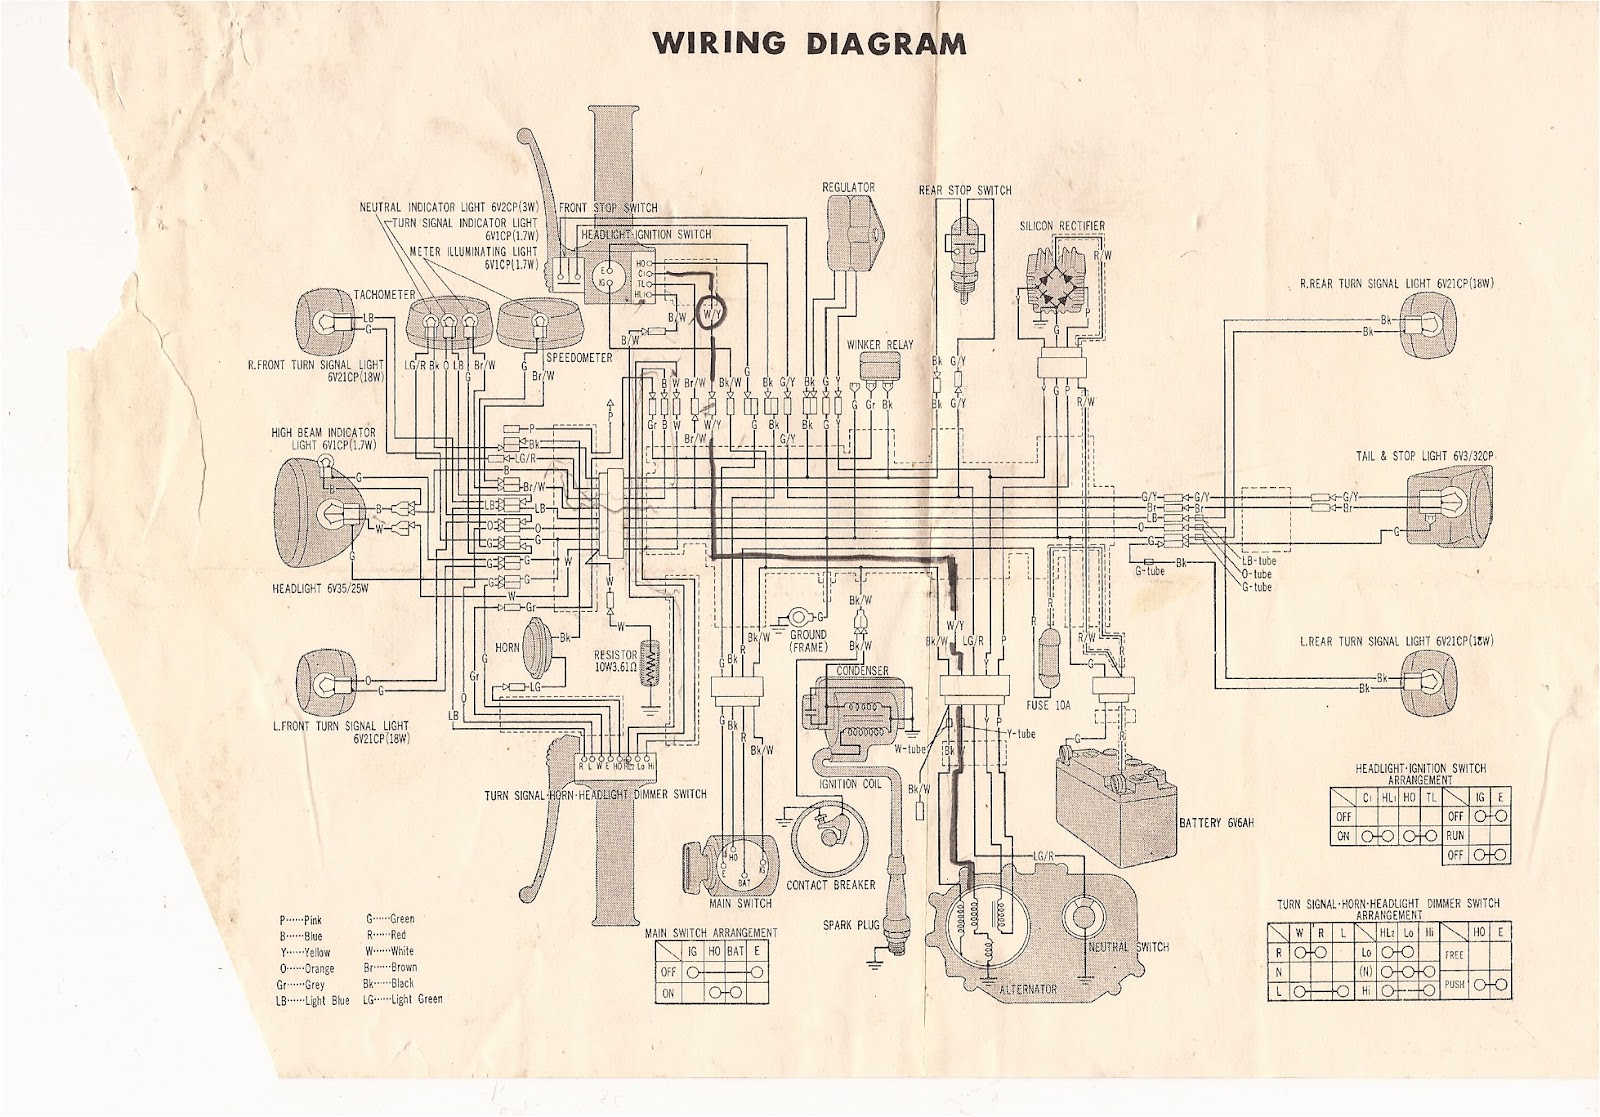 1975 Kawasaki 350 Wiring Diagram Trusted Z900 Images Gallery